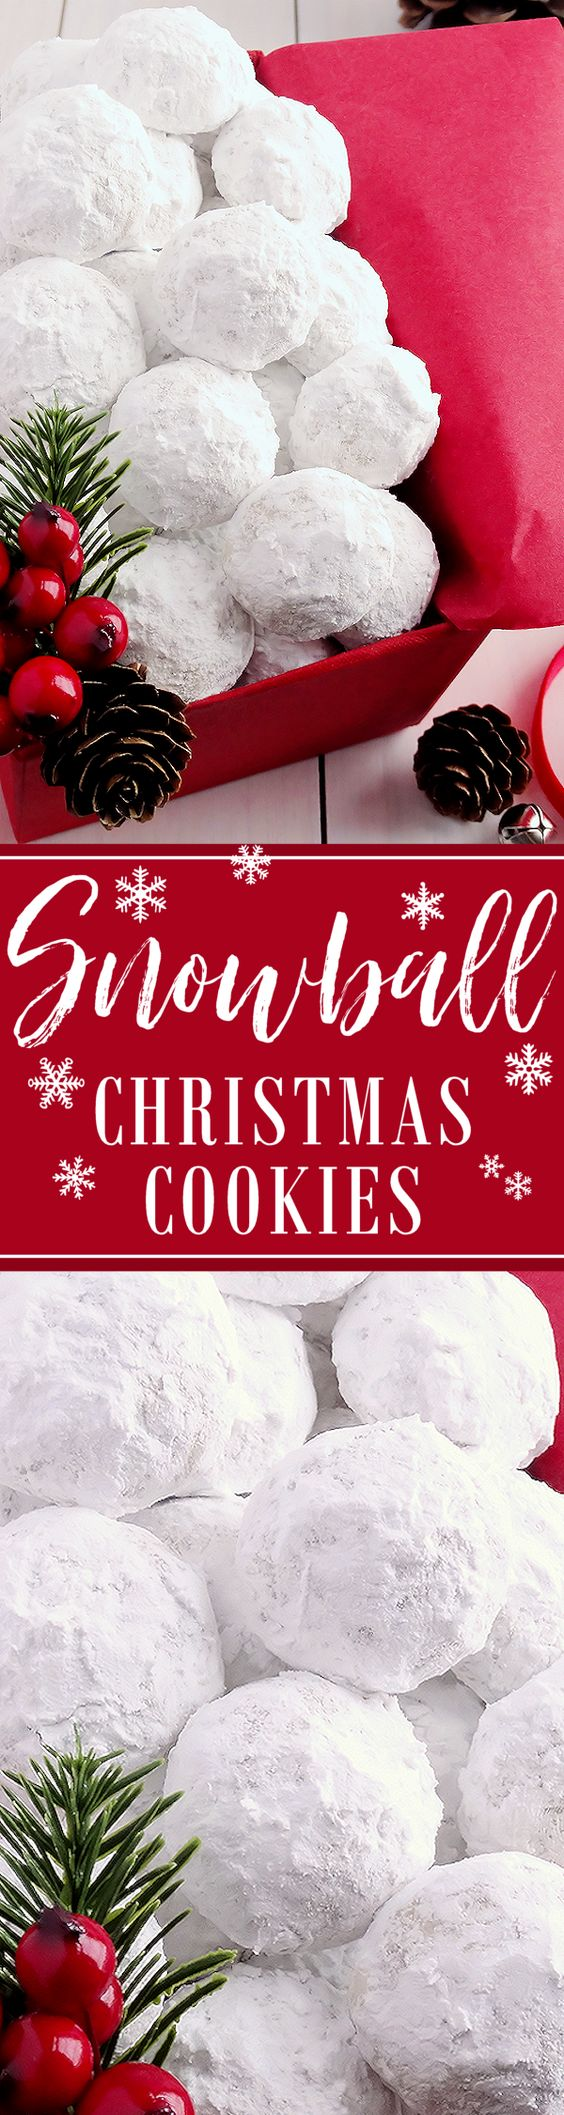 Snowball Christmas Cookies (best ever) ~ Simply the BEST! Buttery, never dry, with plenty of walnuts for a scrumptious melt-in-your-mouth shortbread cookie (also known as Russian Teacakes or Mexican Wedding Cookies). Everyone will LOVE these classic Christmas cookies!: